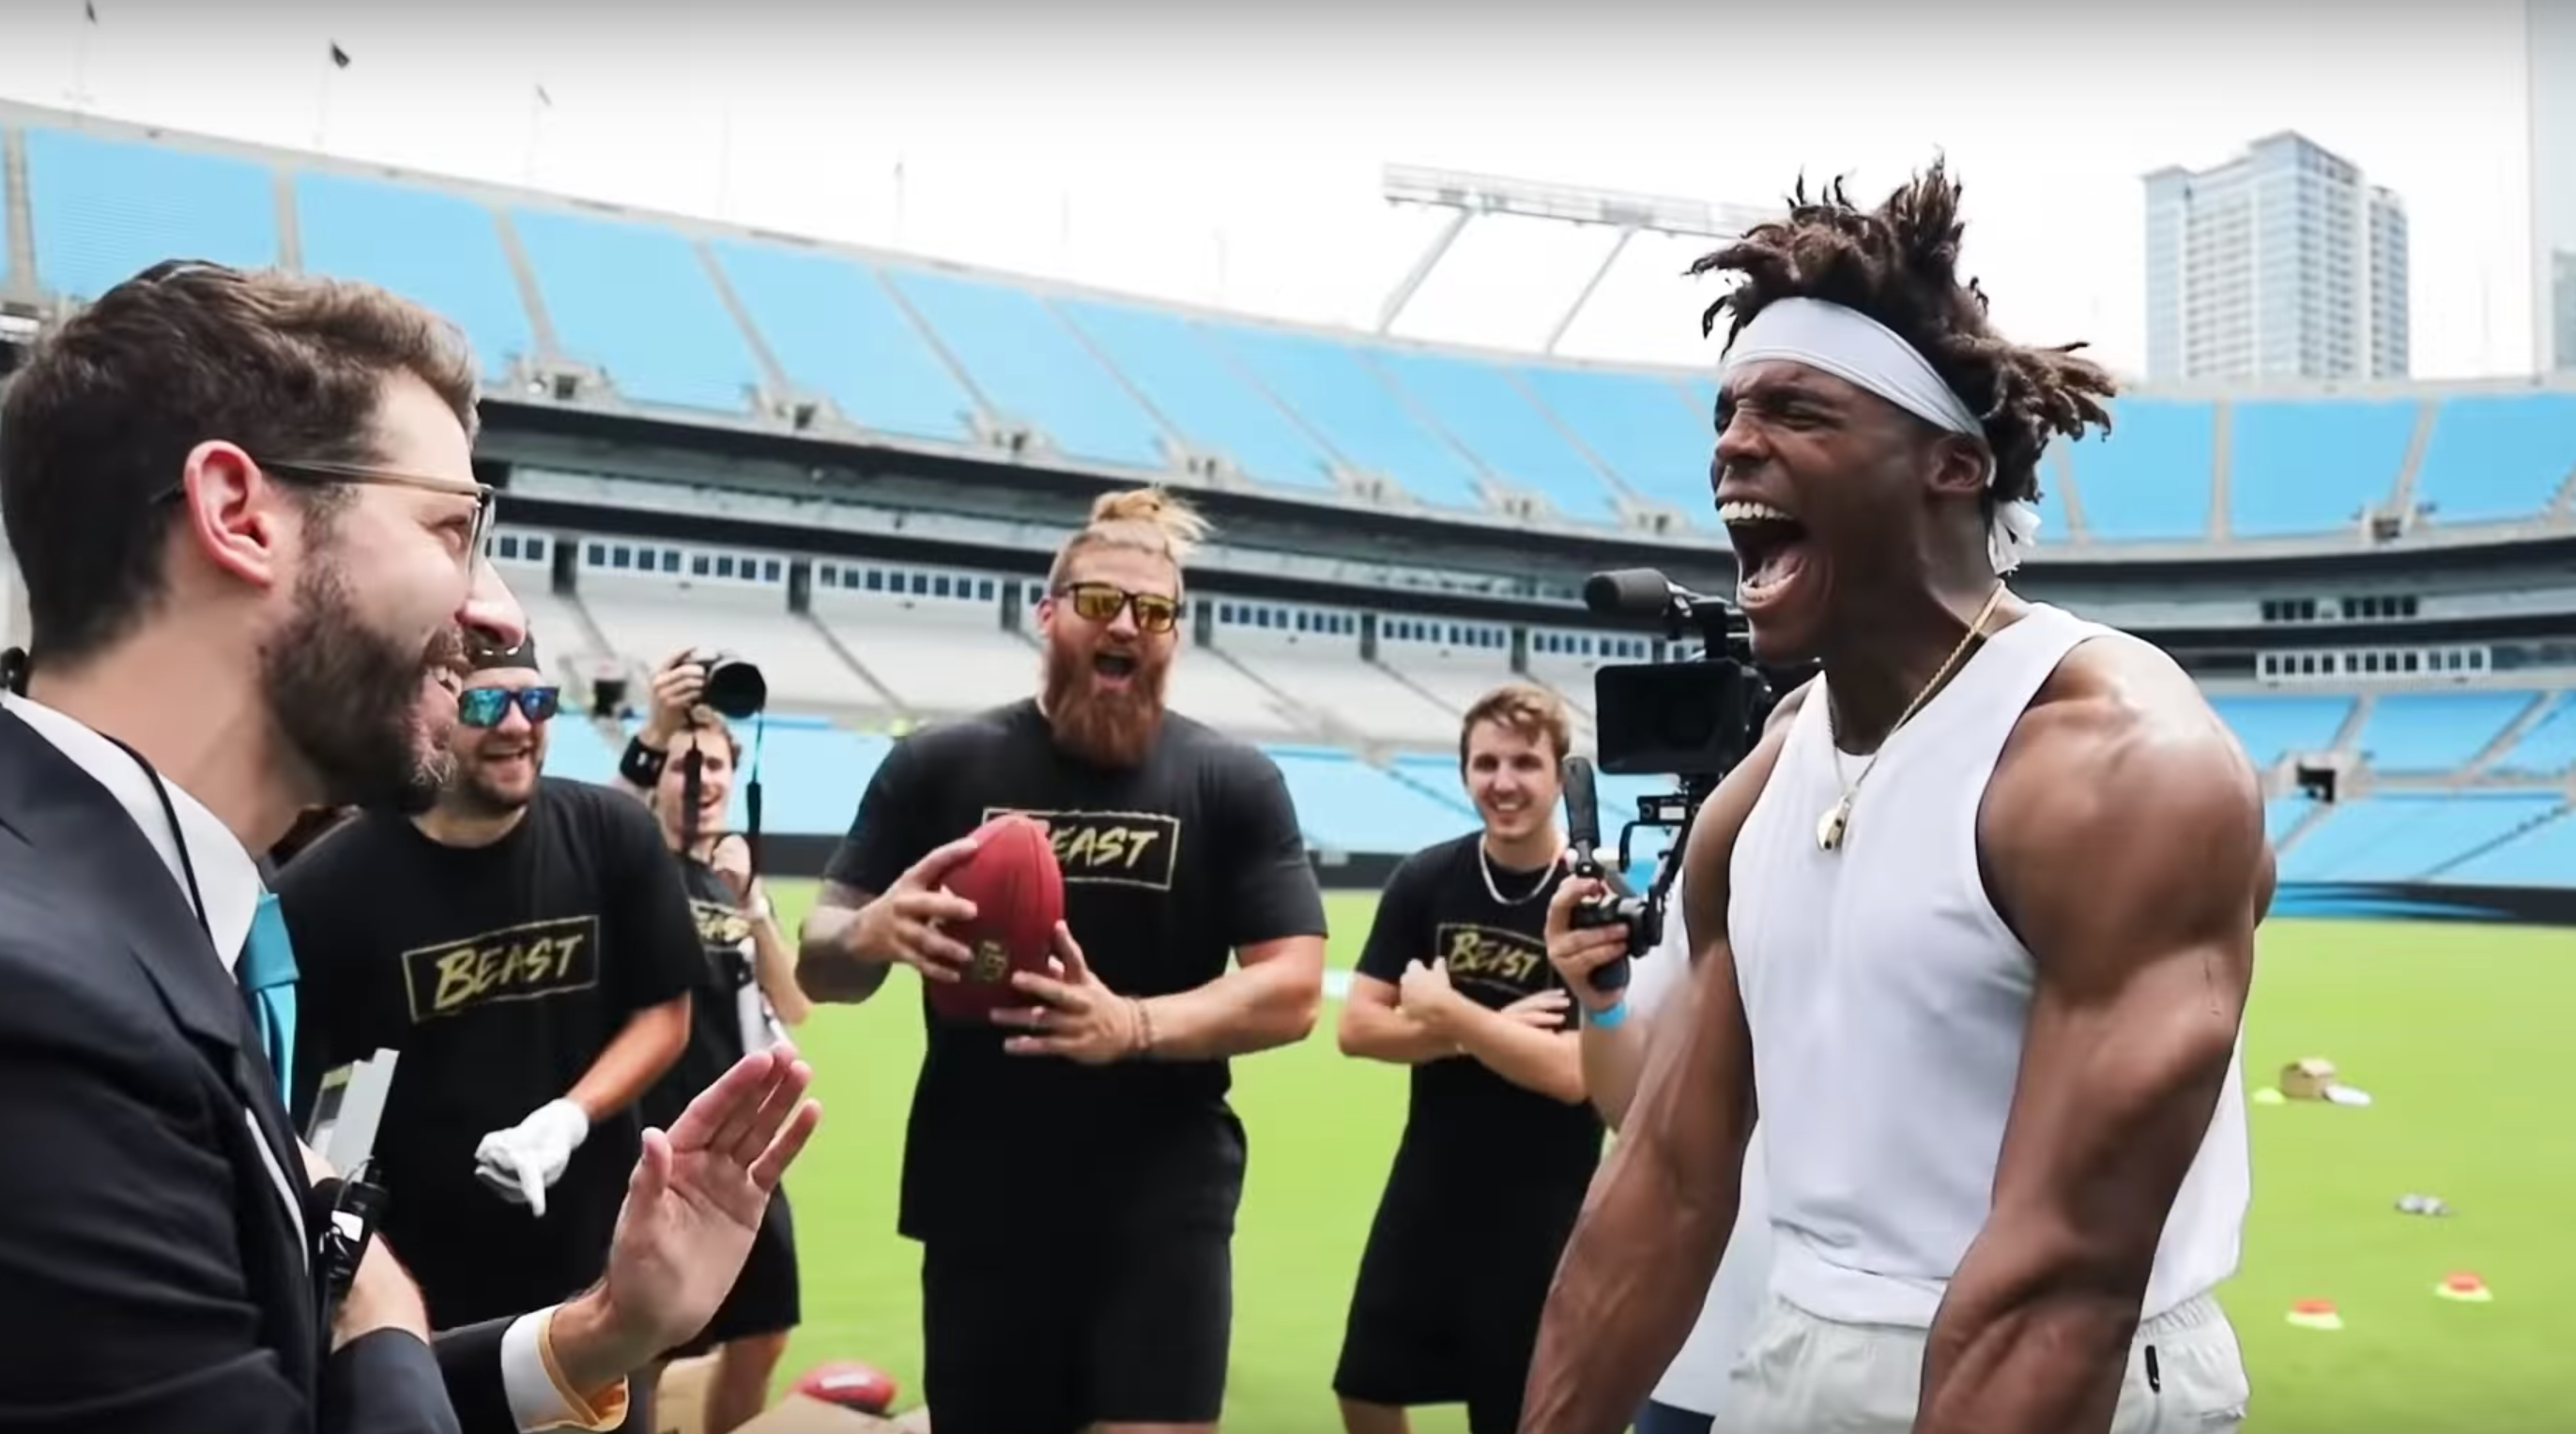 nfl, carolina panthers, cam newton, wire, MrBeast, guinness book of world records